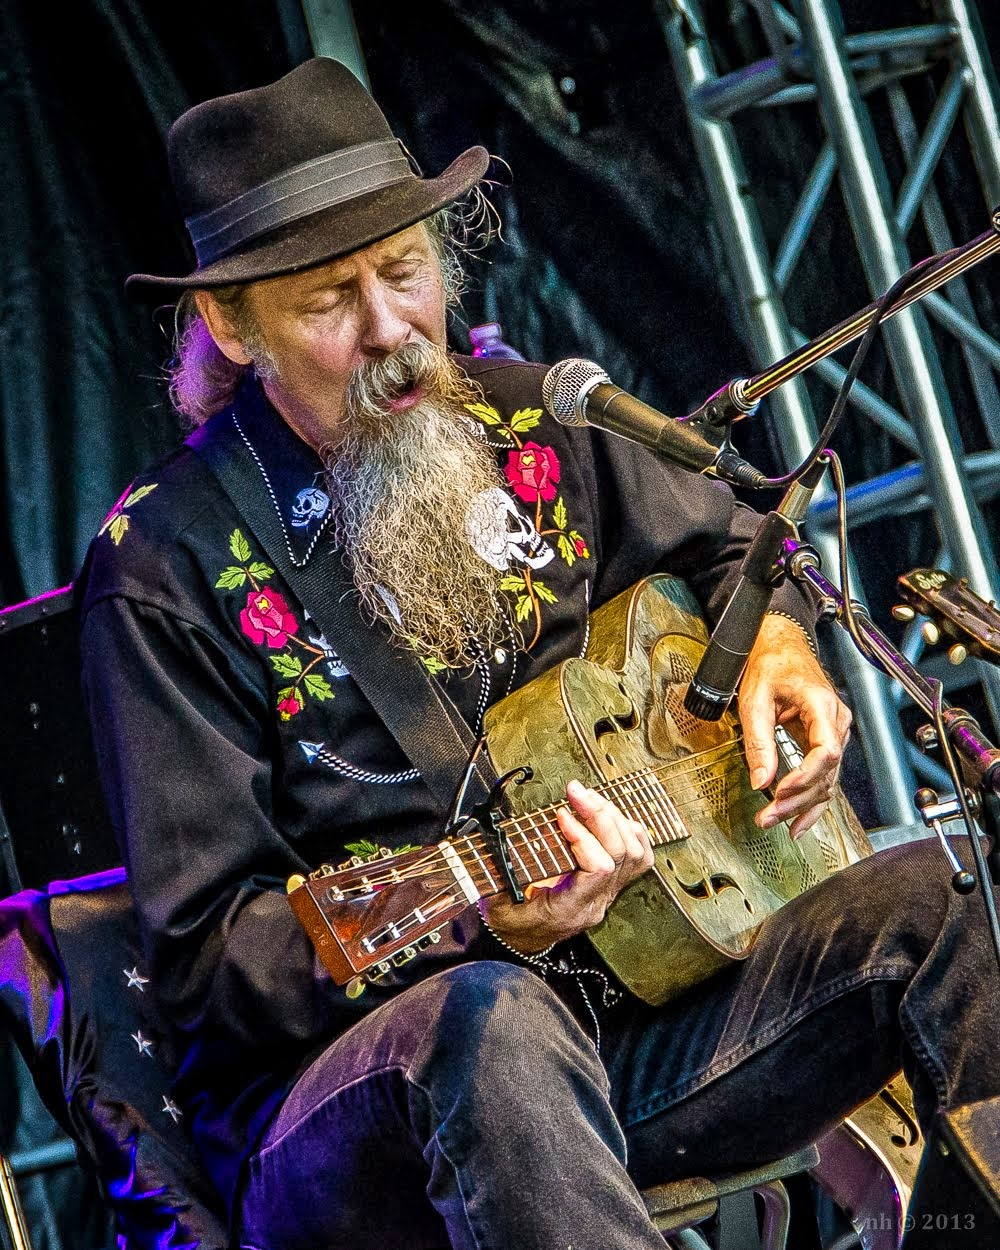 Doc MacLean, performance